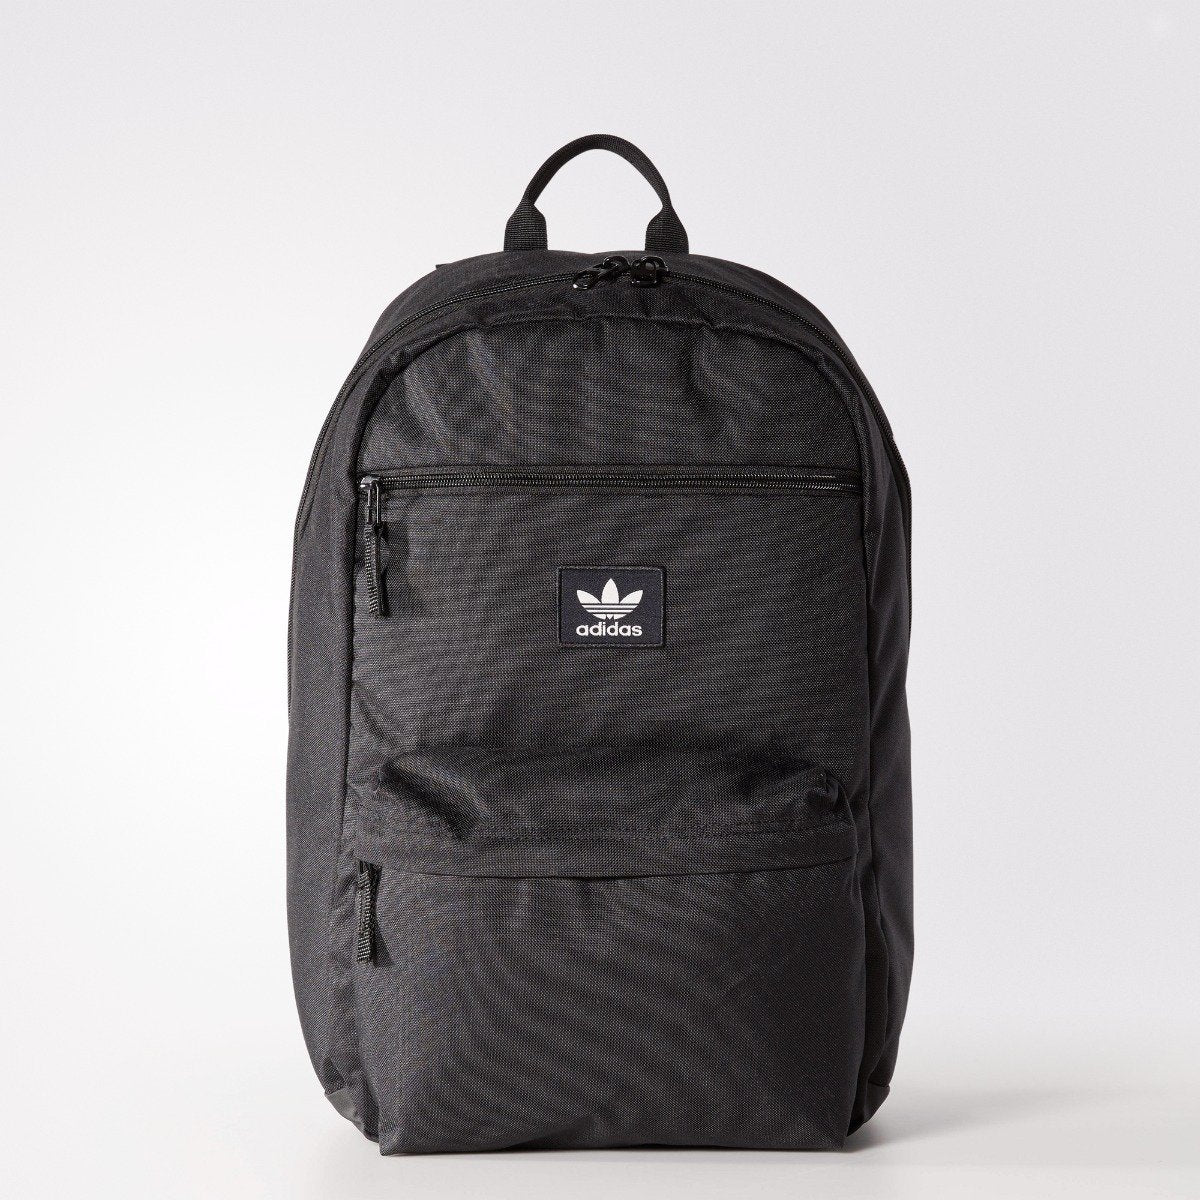 a2f3ae27199 adidas Originals National Backpack Black CH7652 | Chicago City Sports